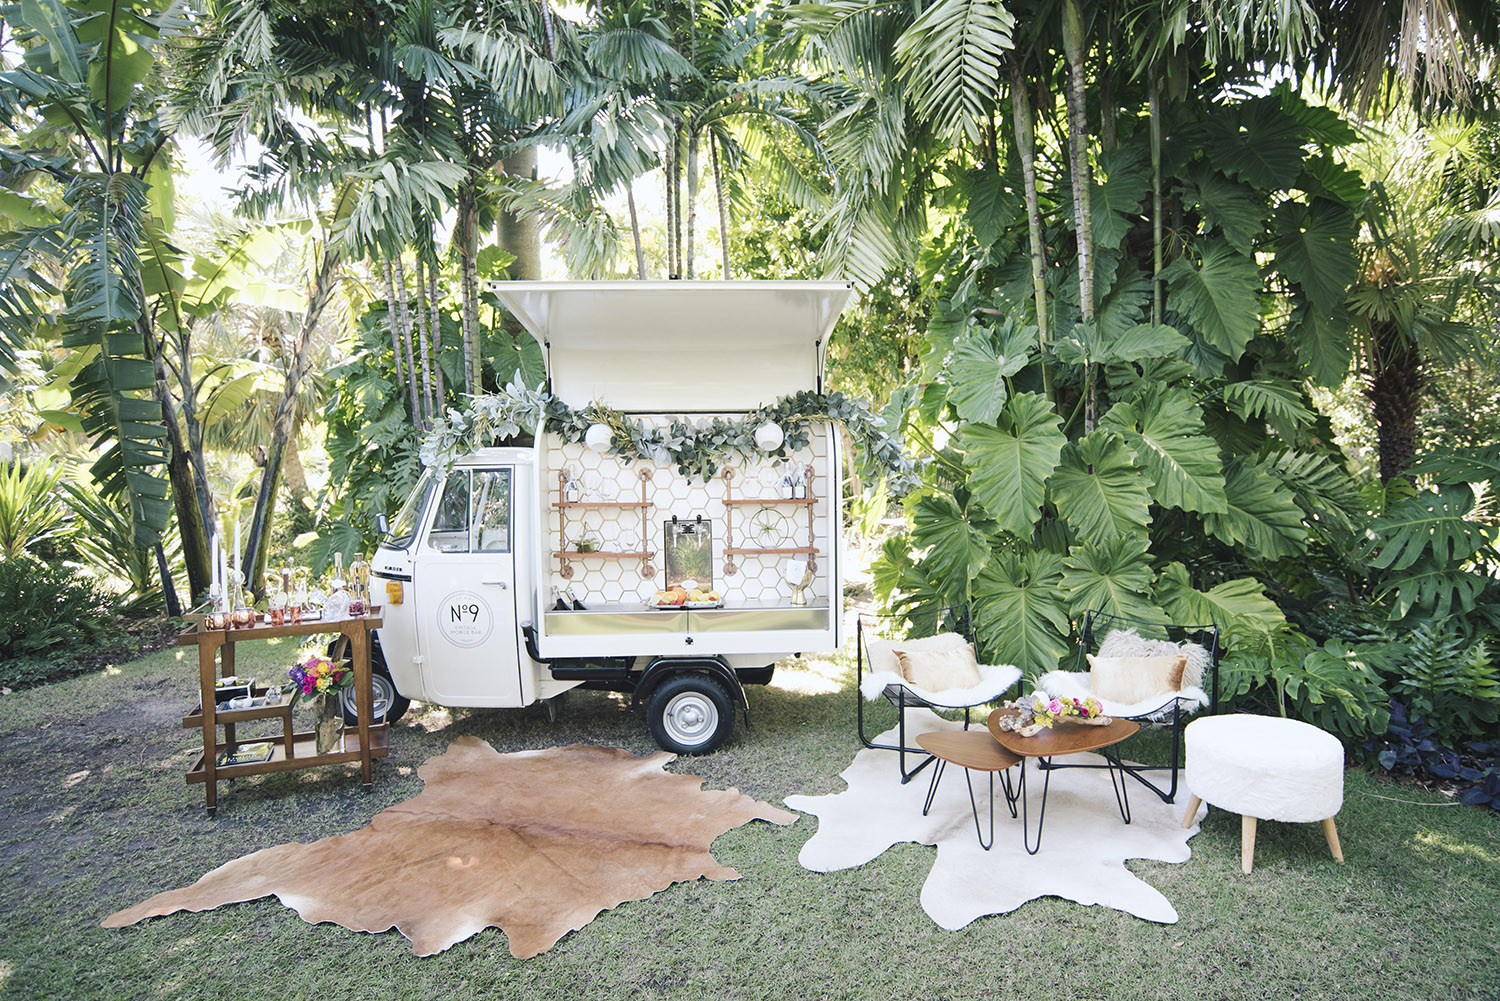 Charming Vintage Mobile Bar & Photo Booth